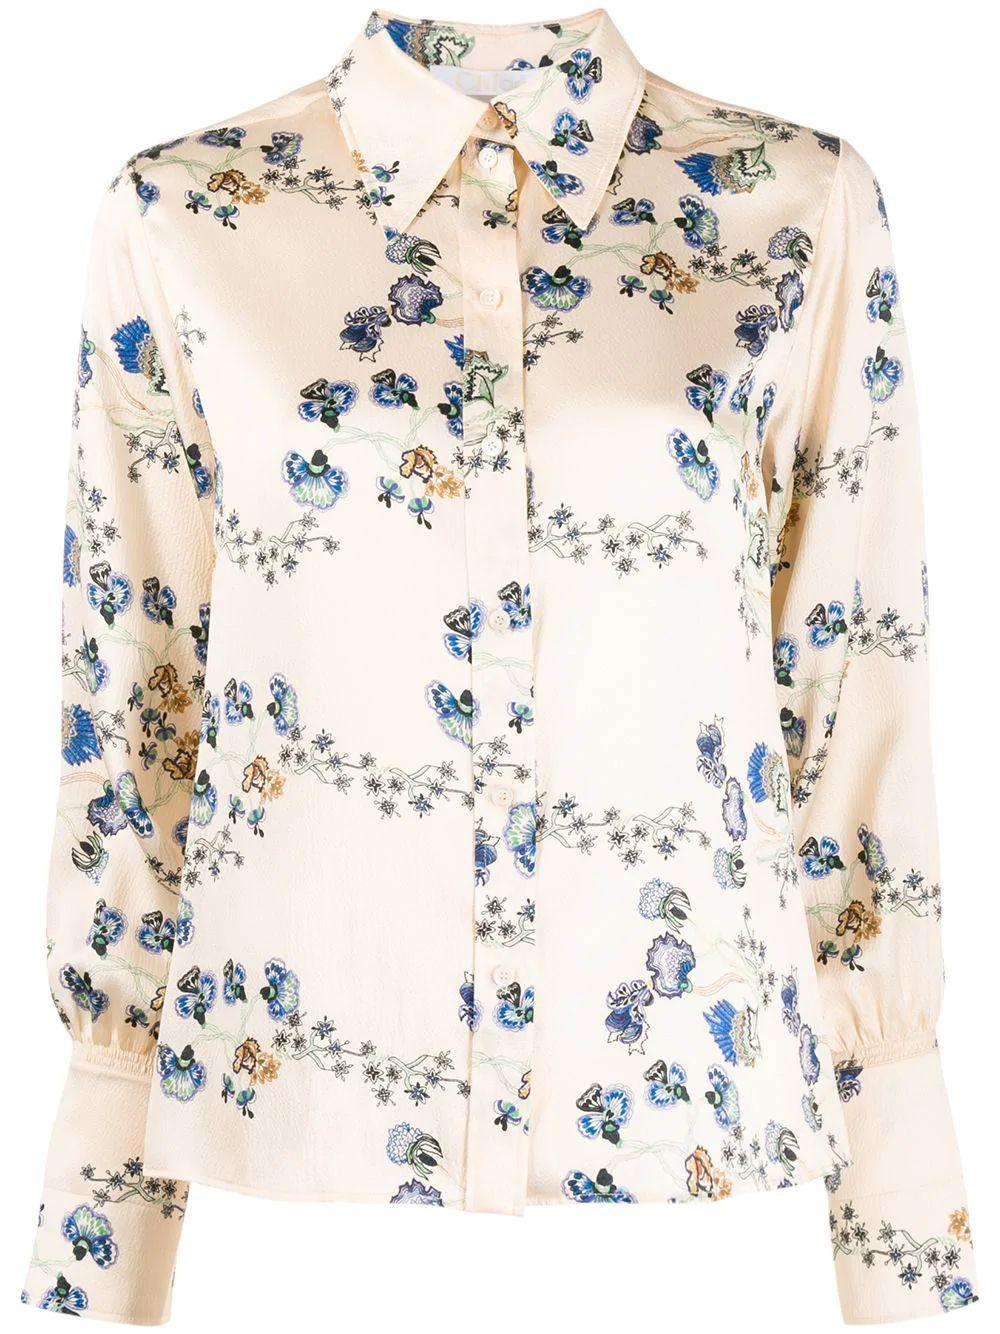 Long Sleeve Floral Print Silk Button Up Blouse Item # CHC20SHT59324